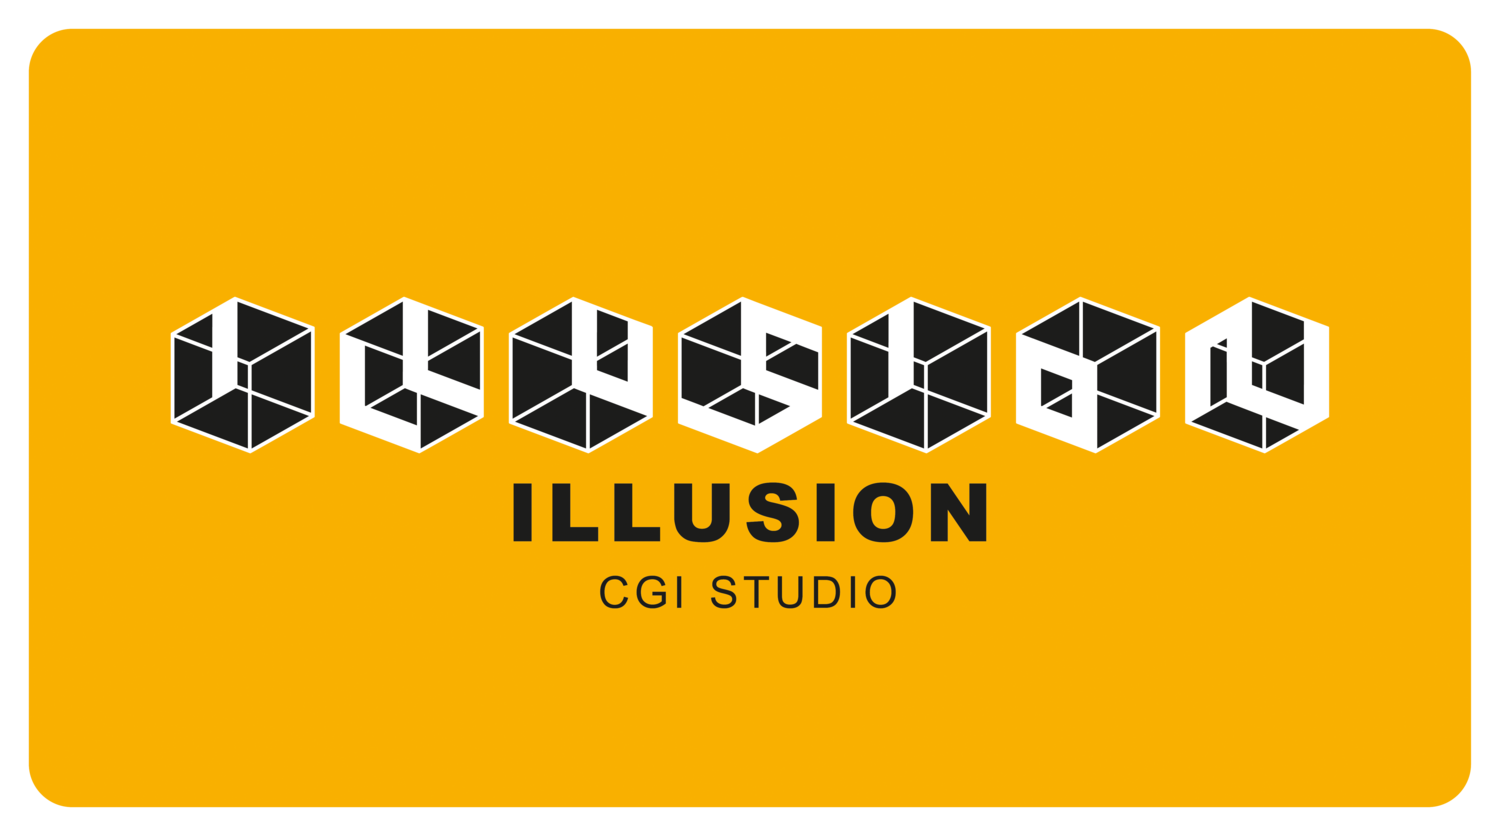 ILLUSION CGI STUDIO